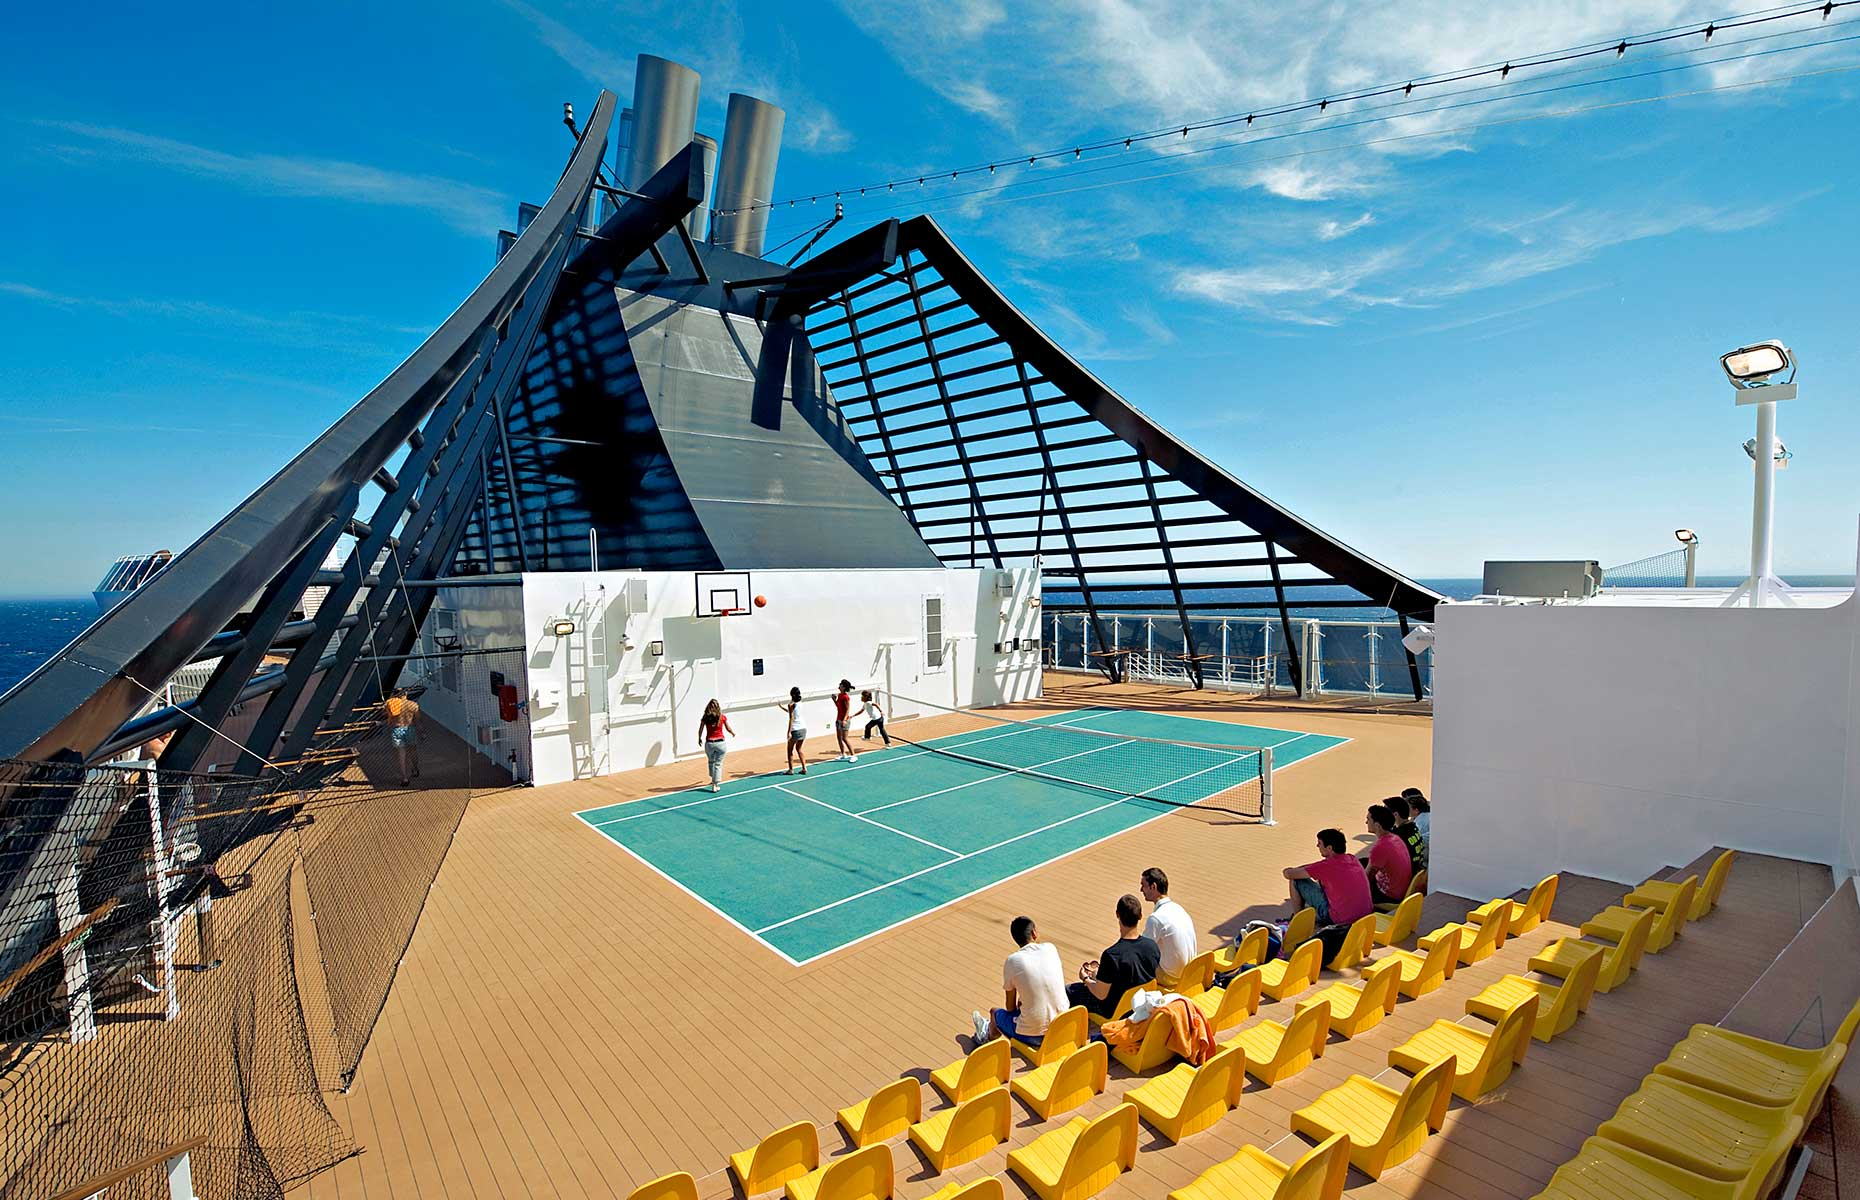 On-deck activities with MSC Cruises (Image: Courtesy of MSC Cruises)